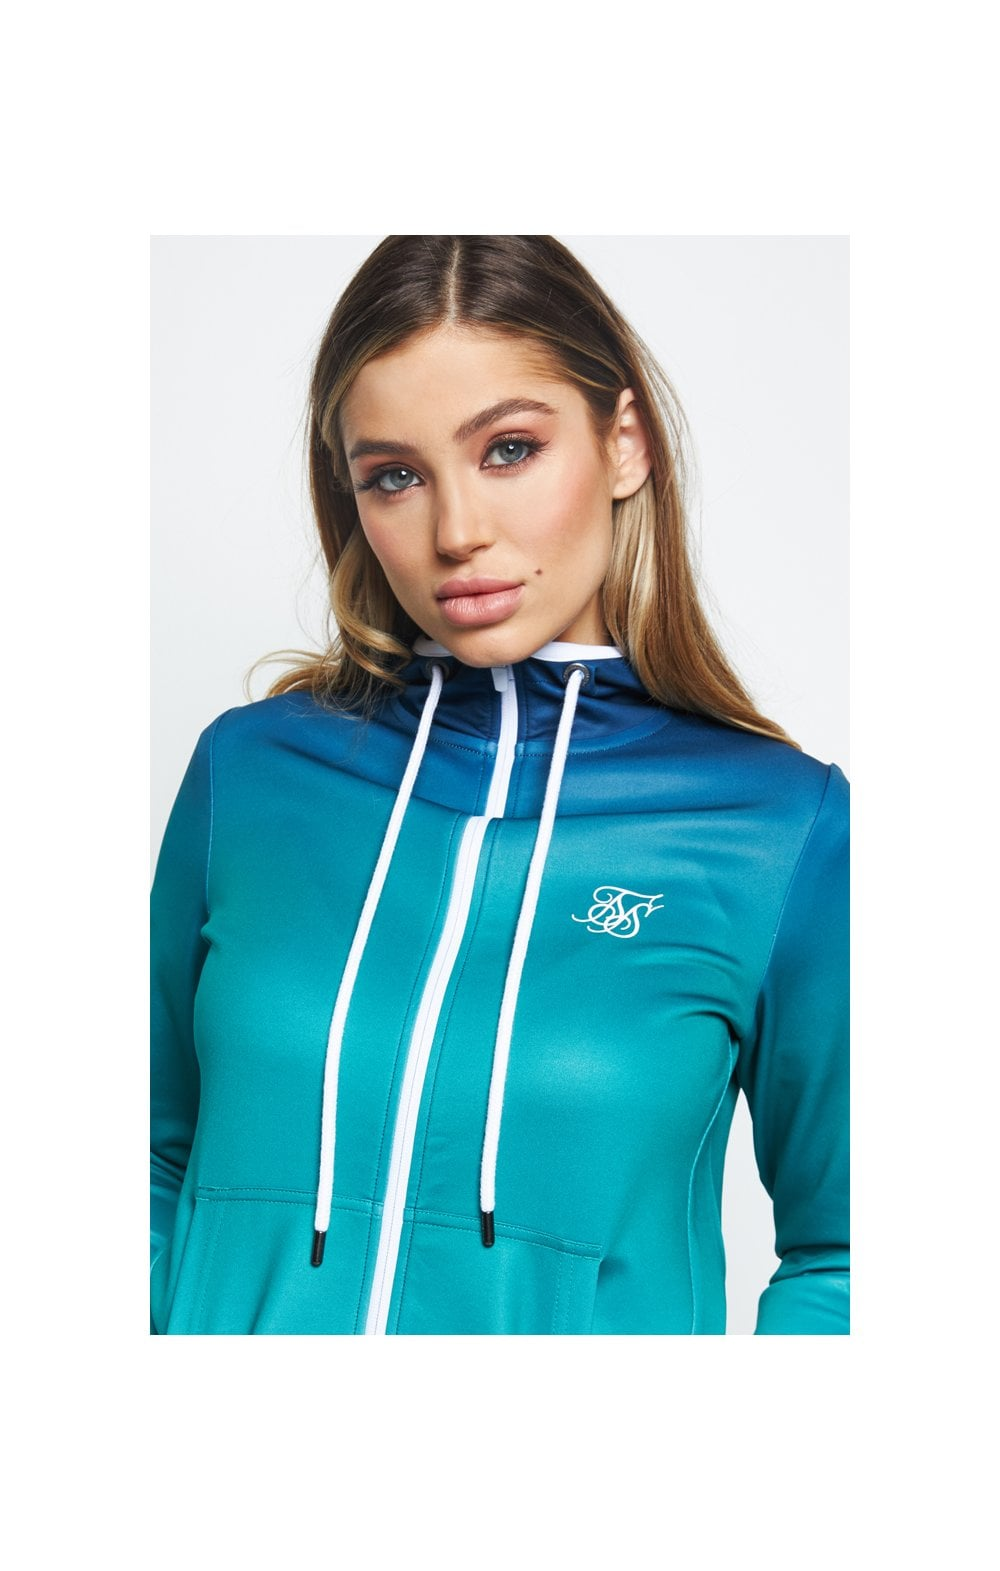 SikSilk Fade Tape Track Jacket - Navy & Teal (1)